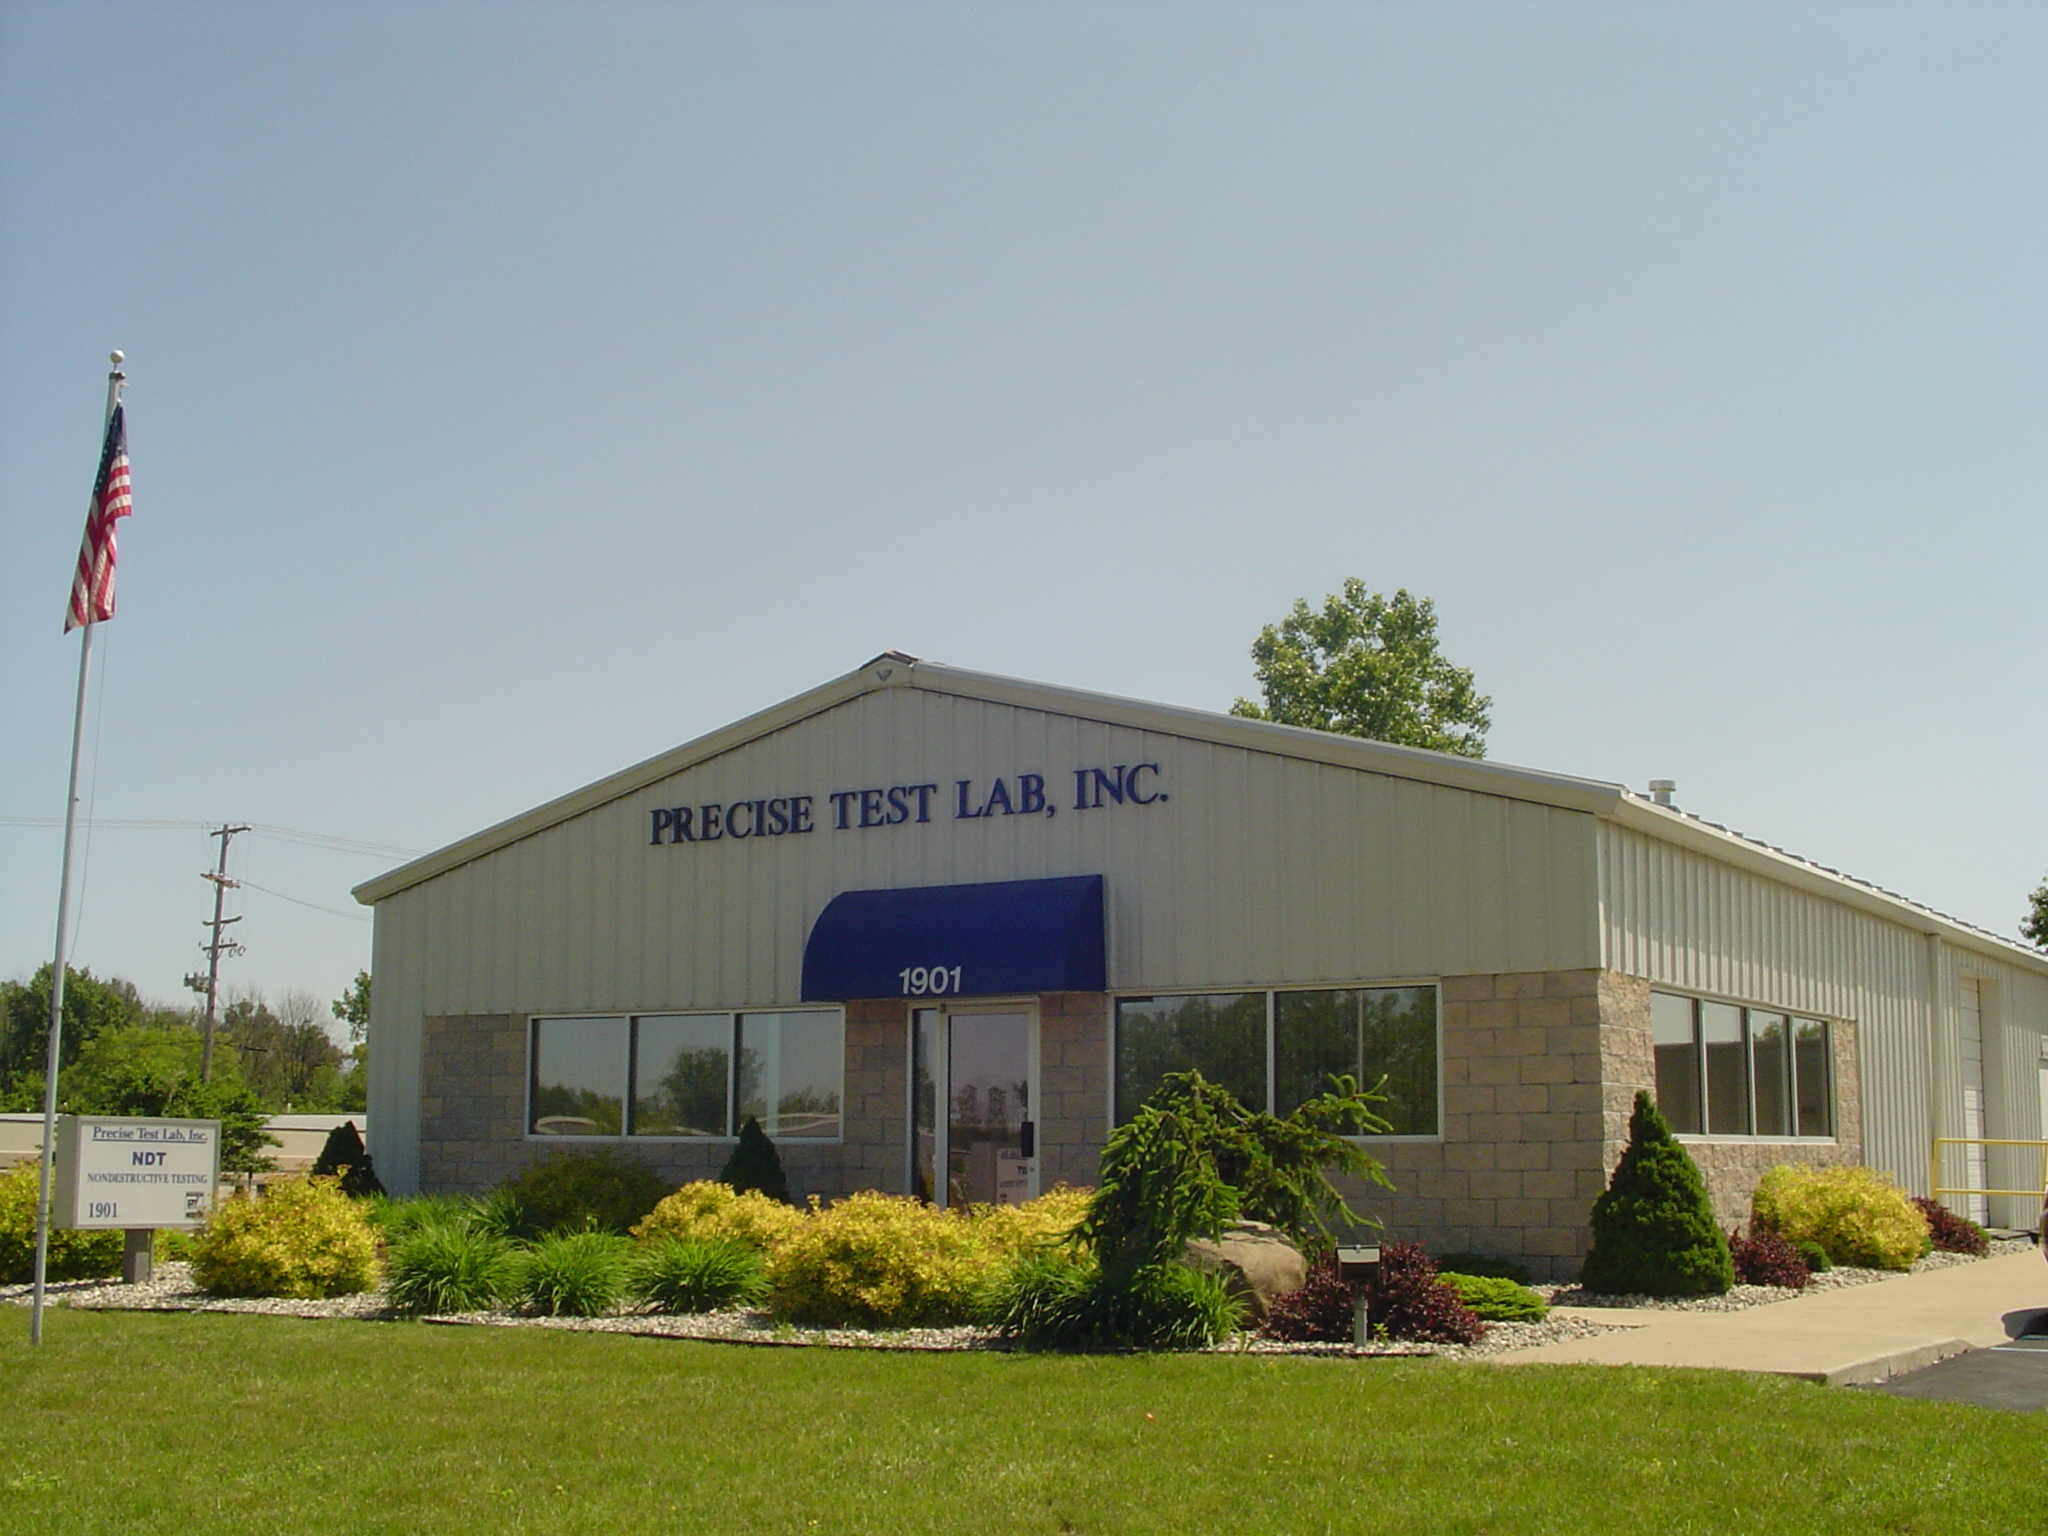 Precise Test Lab, Inc.